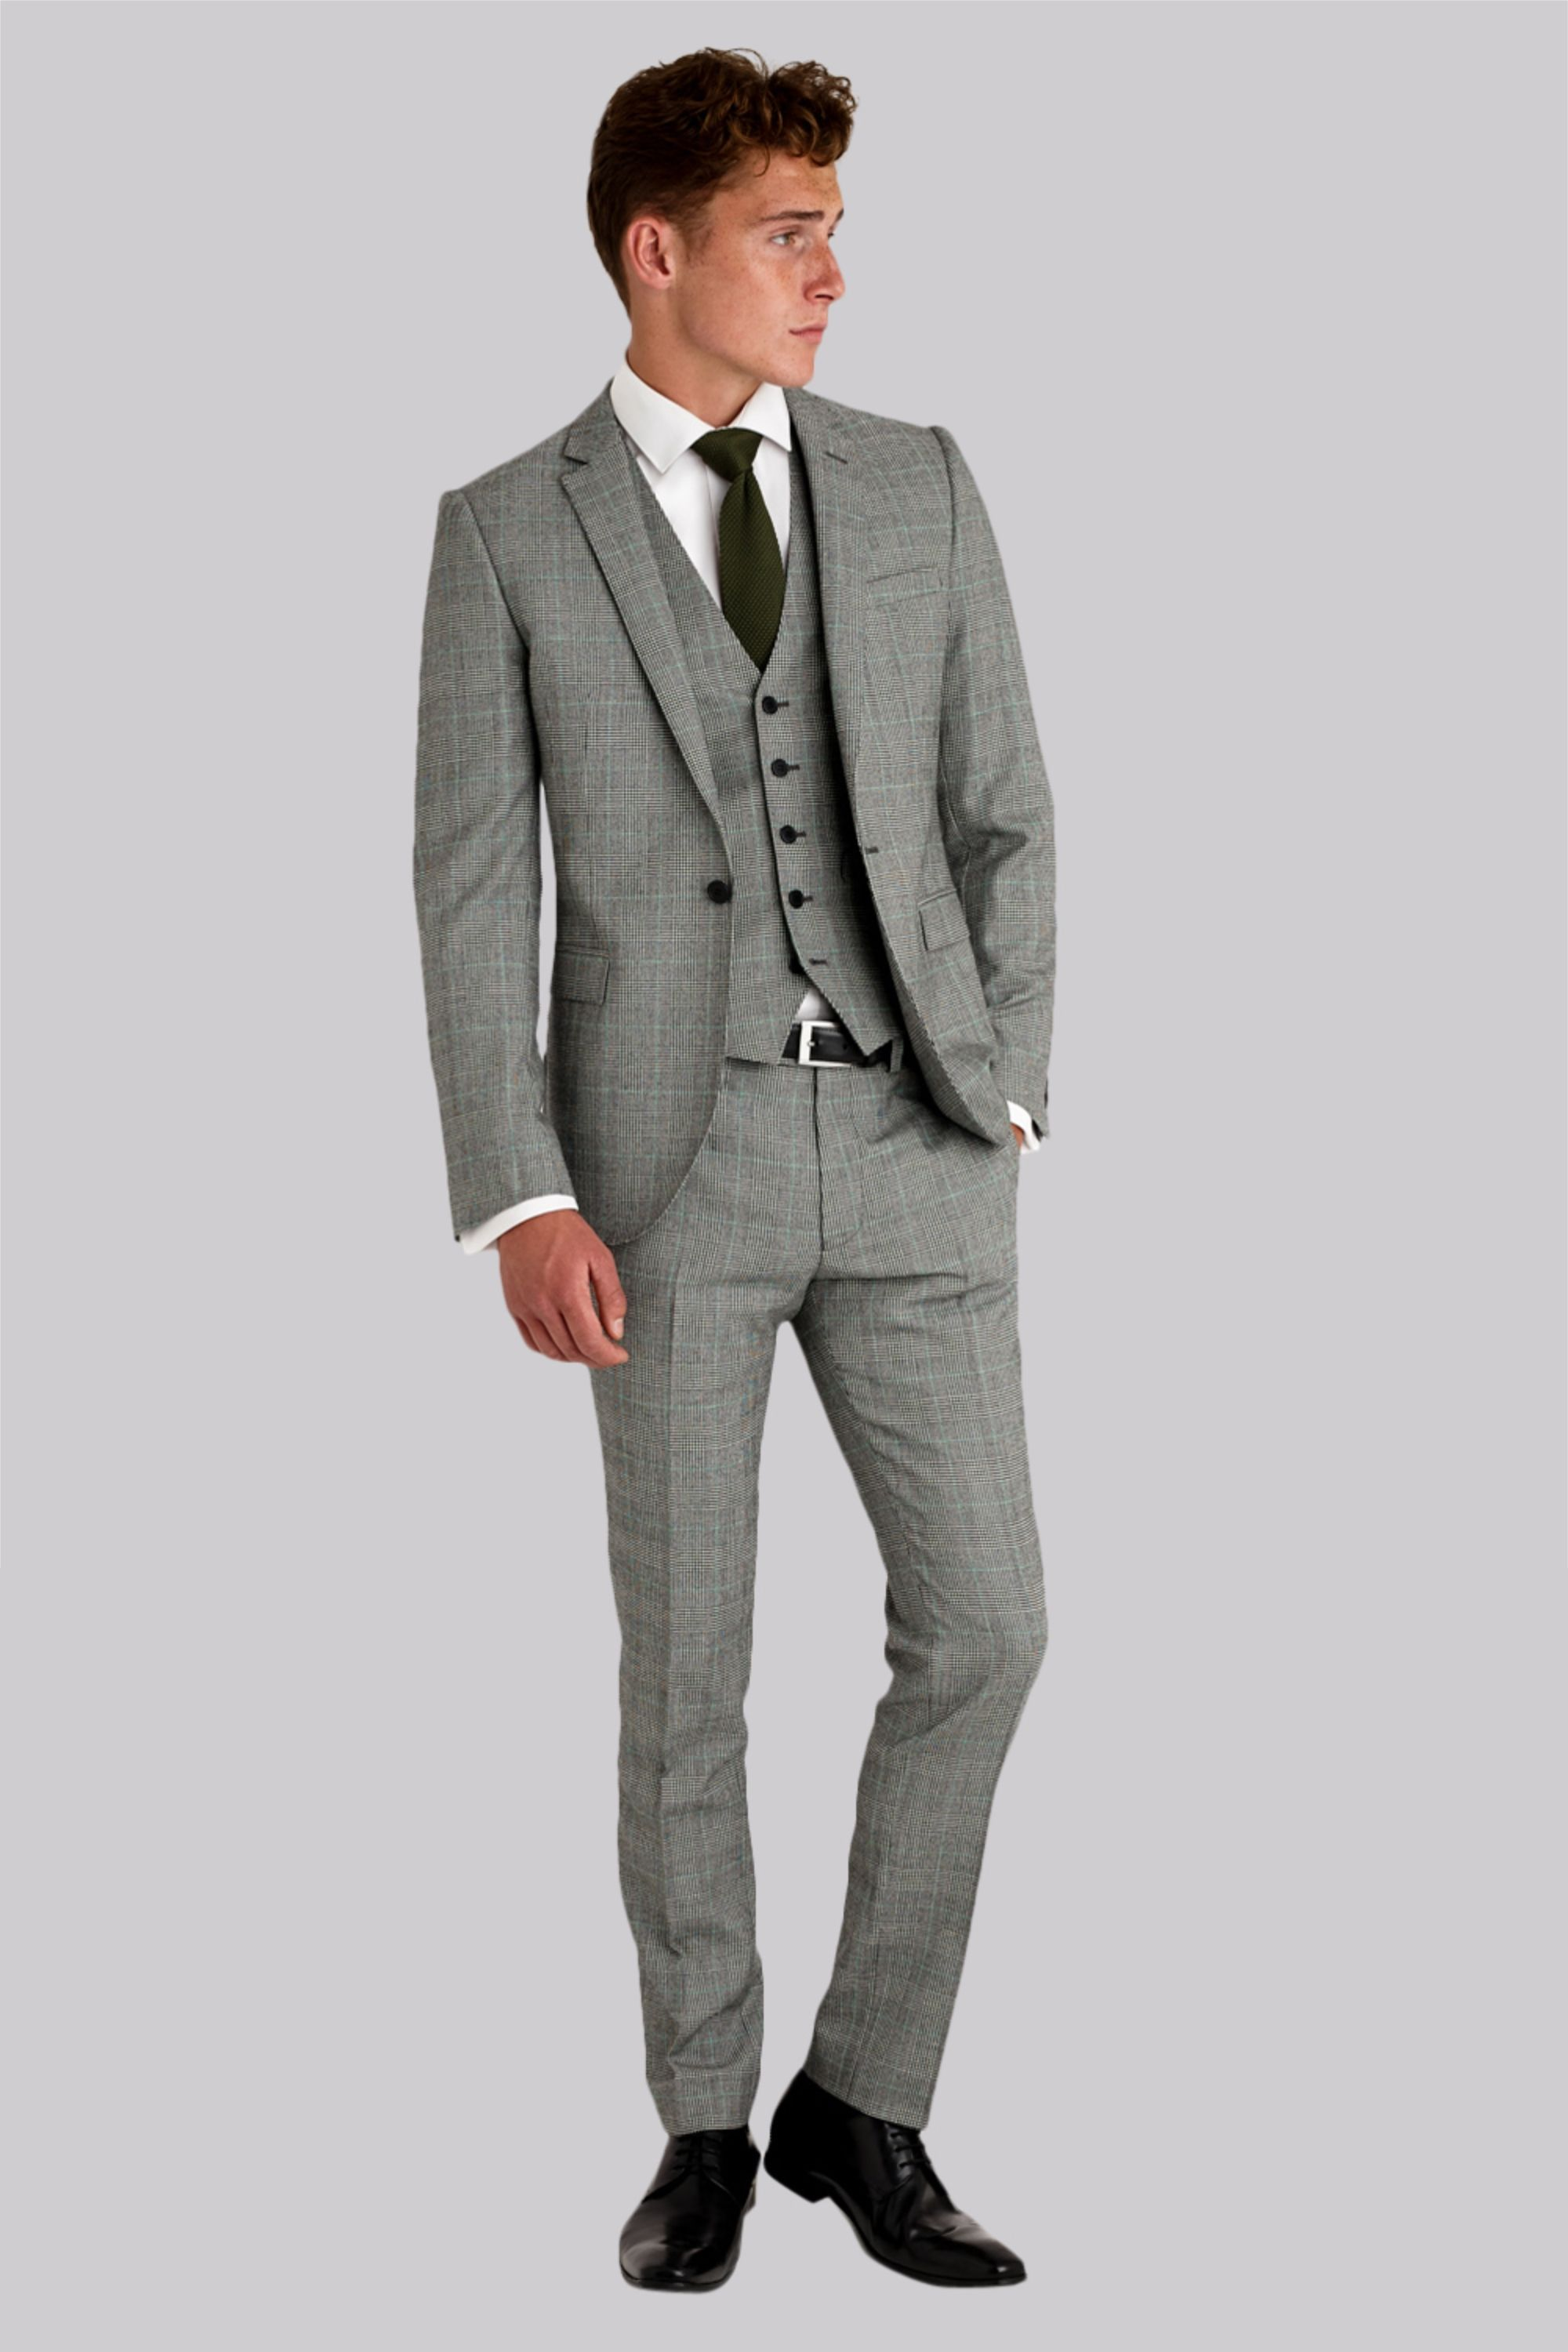 2c28b761373d Moss London Slim Fit Black and White with Green Check 3 Piece Suit ...